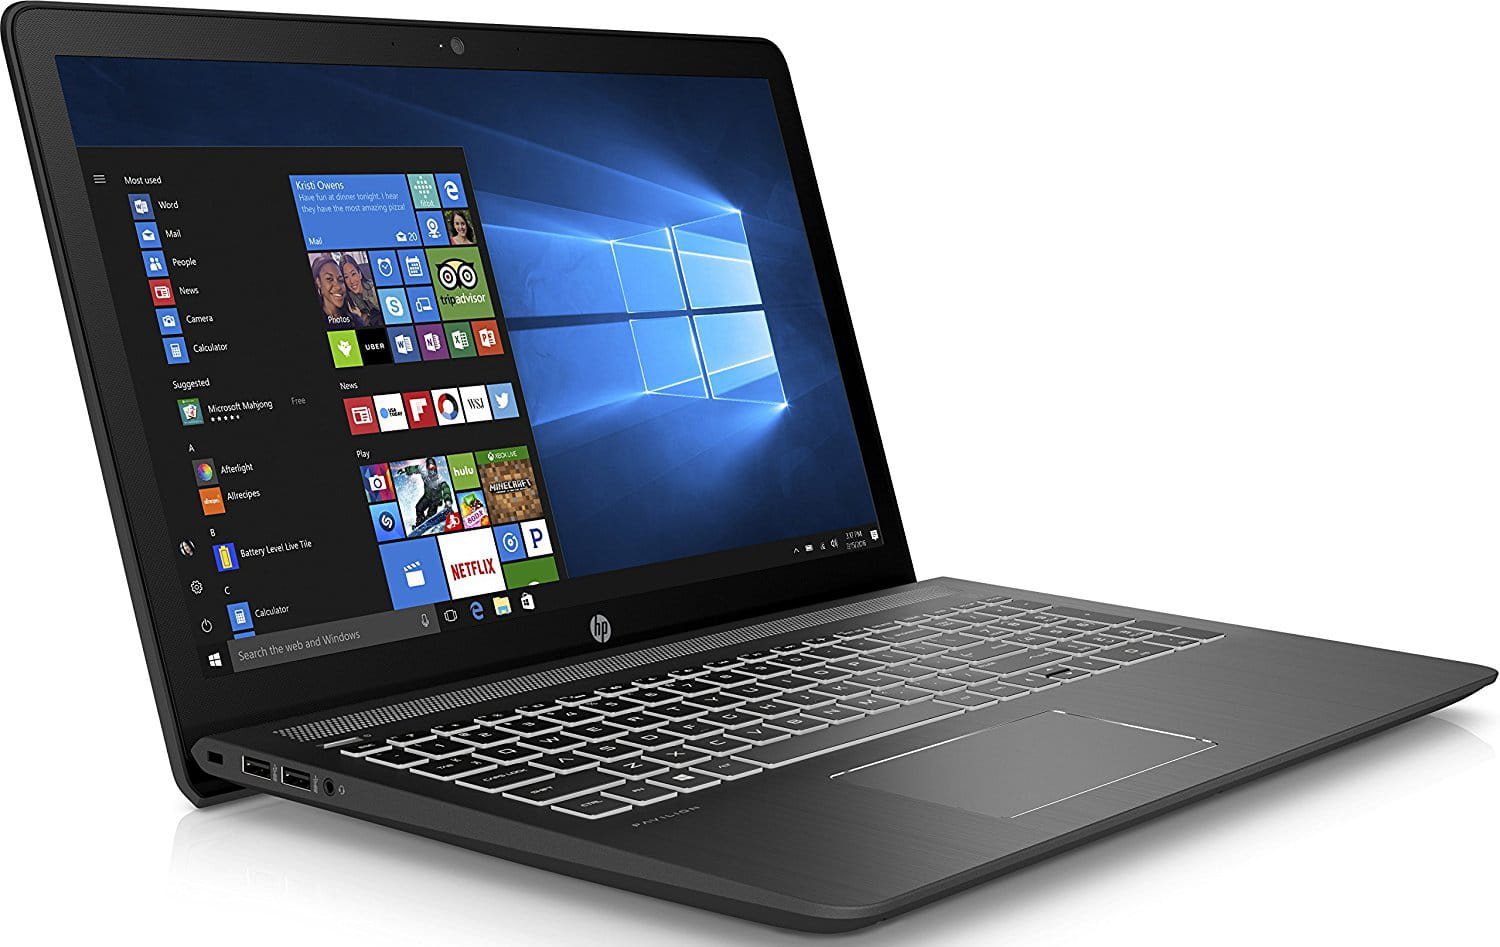 HP Pavilion Power 15-cb031nl notebook